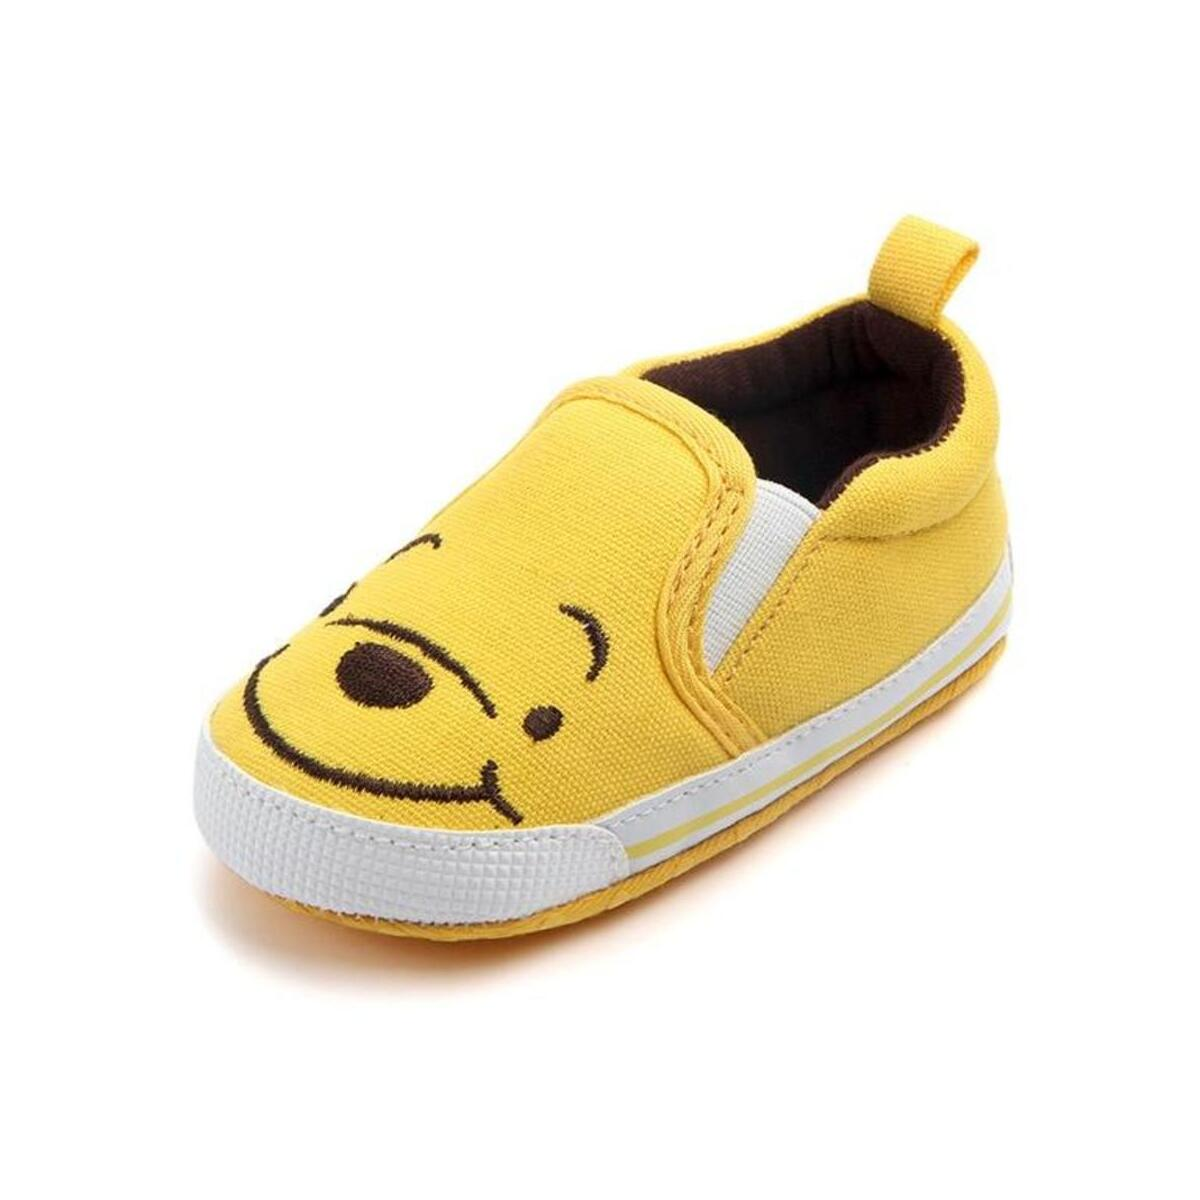 *Hot sale* Cartoon Character style Toddlers Baby Canvas shoes